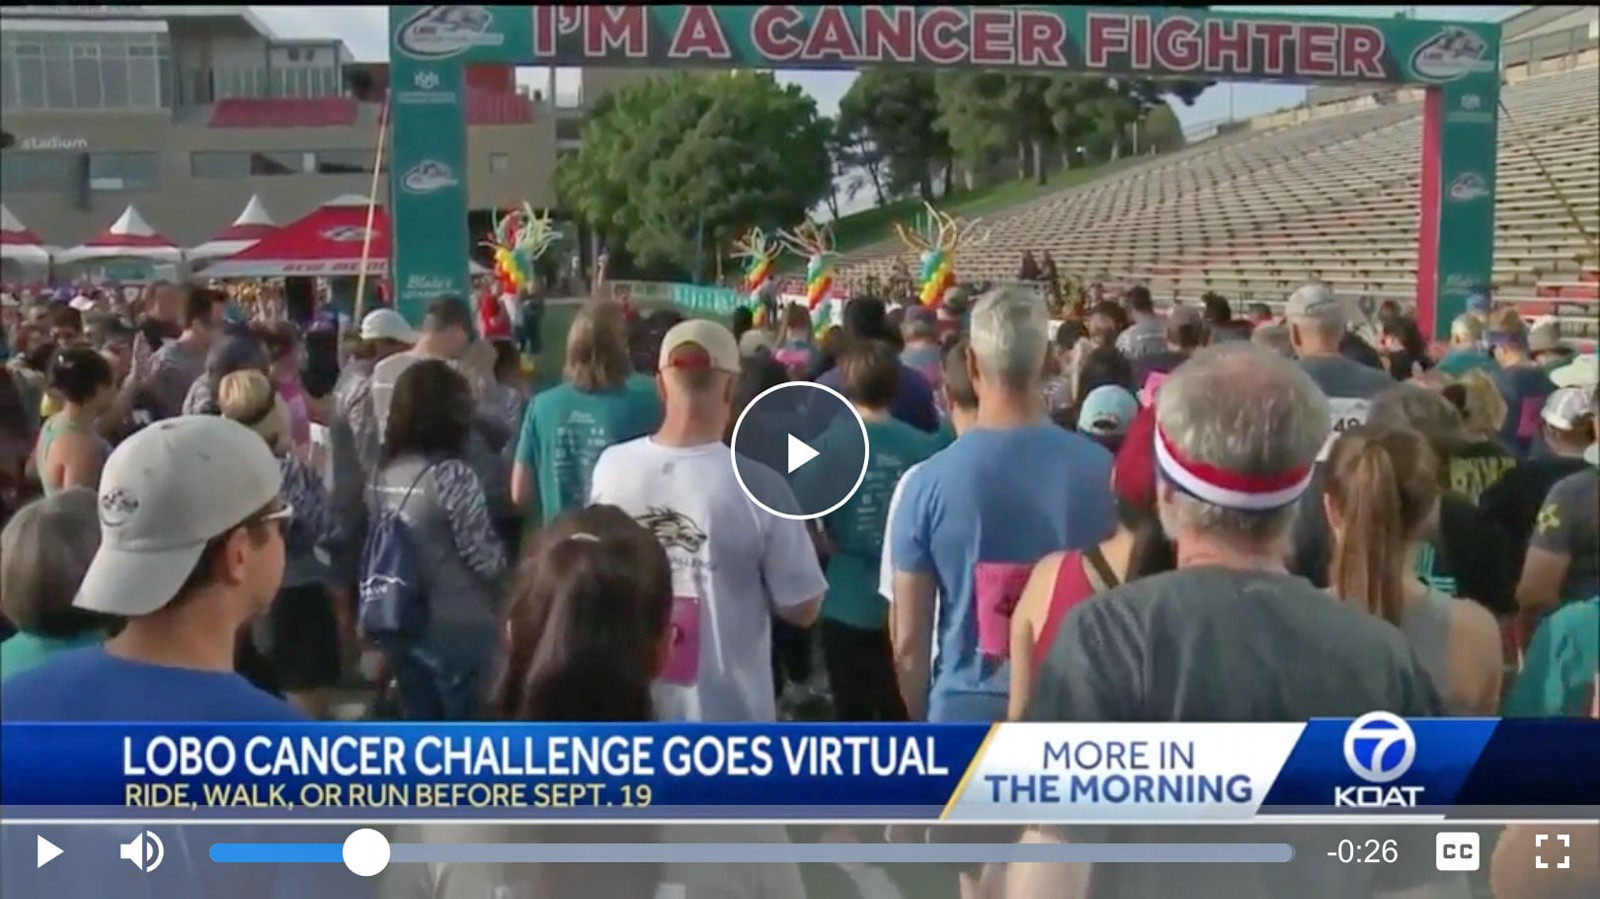 KOAT previews the 2020 Lobo Cancer Challenge virtual event